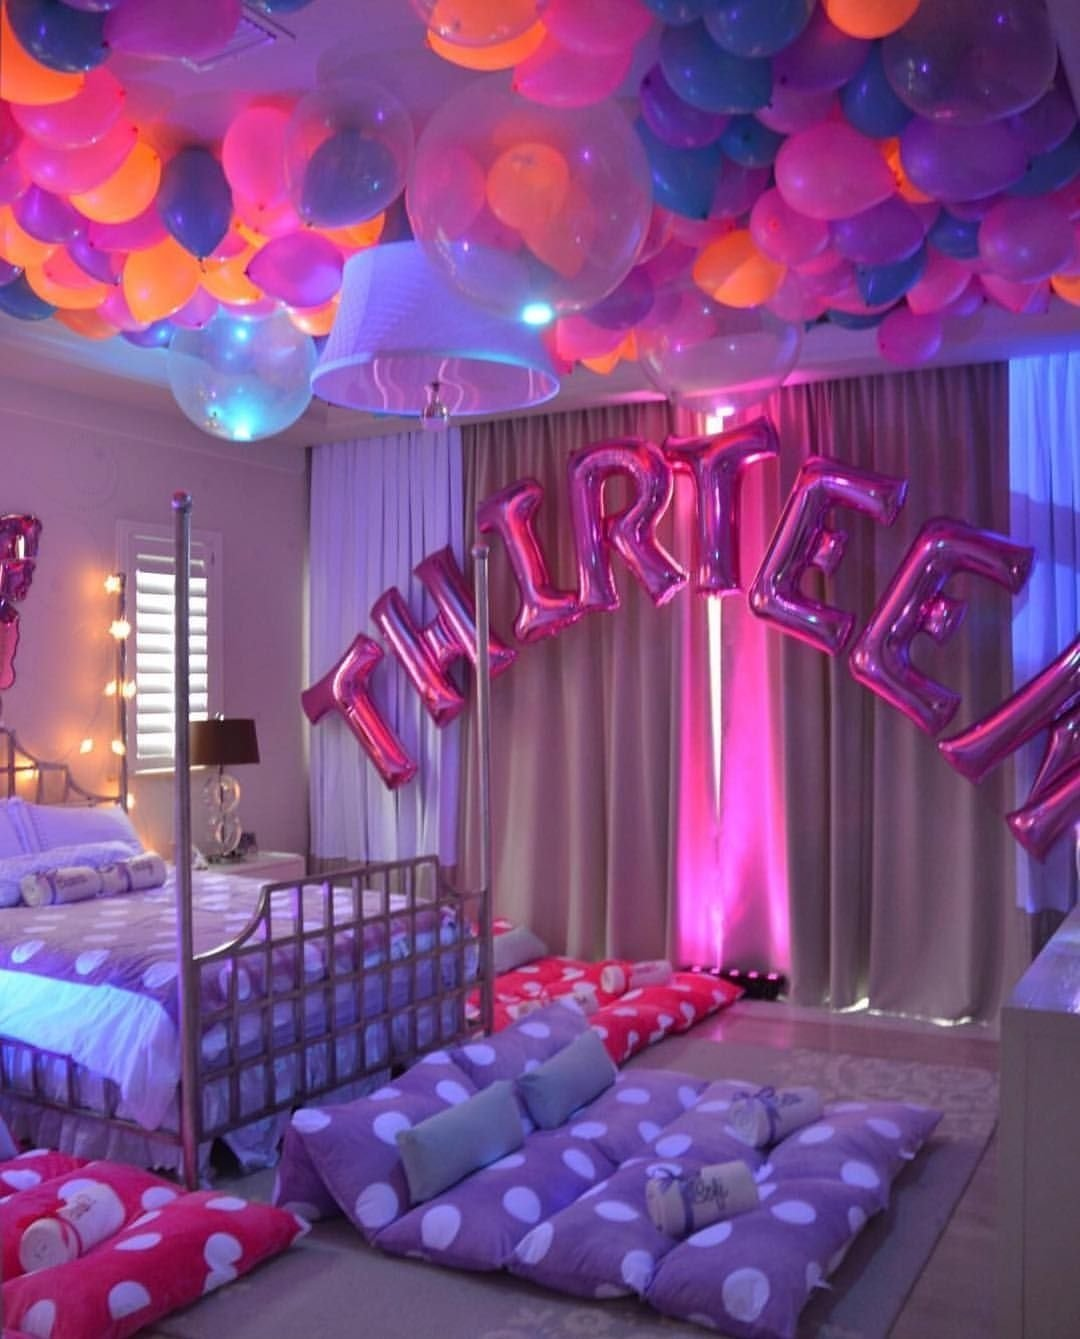 10 Spectacular Fun 13 Year Old Birthday Party Ideas the cutest birthday look for a 13 year old girlcenter stage 4 2020